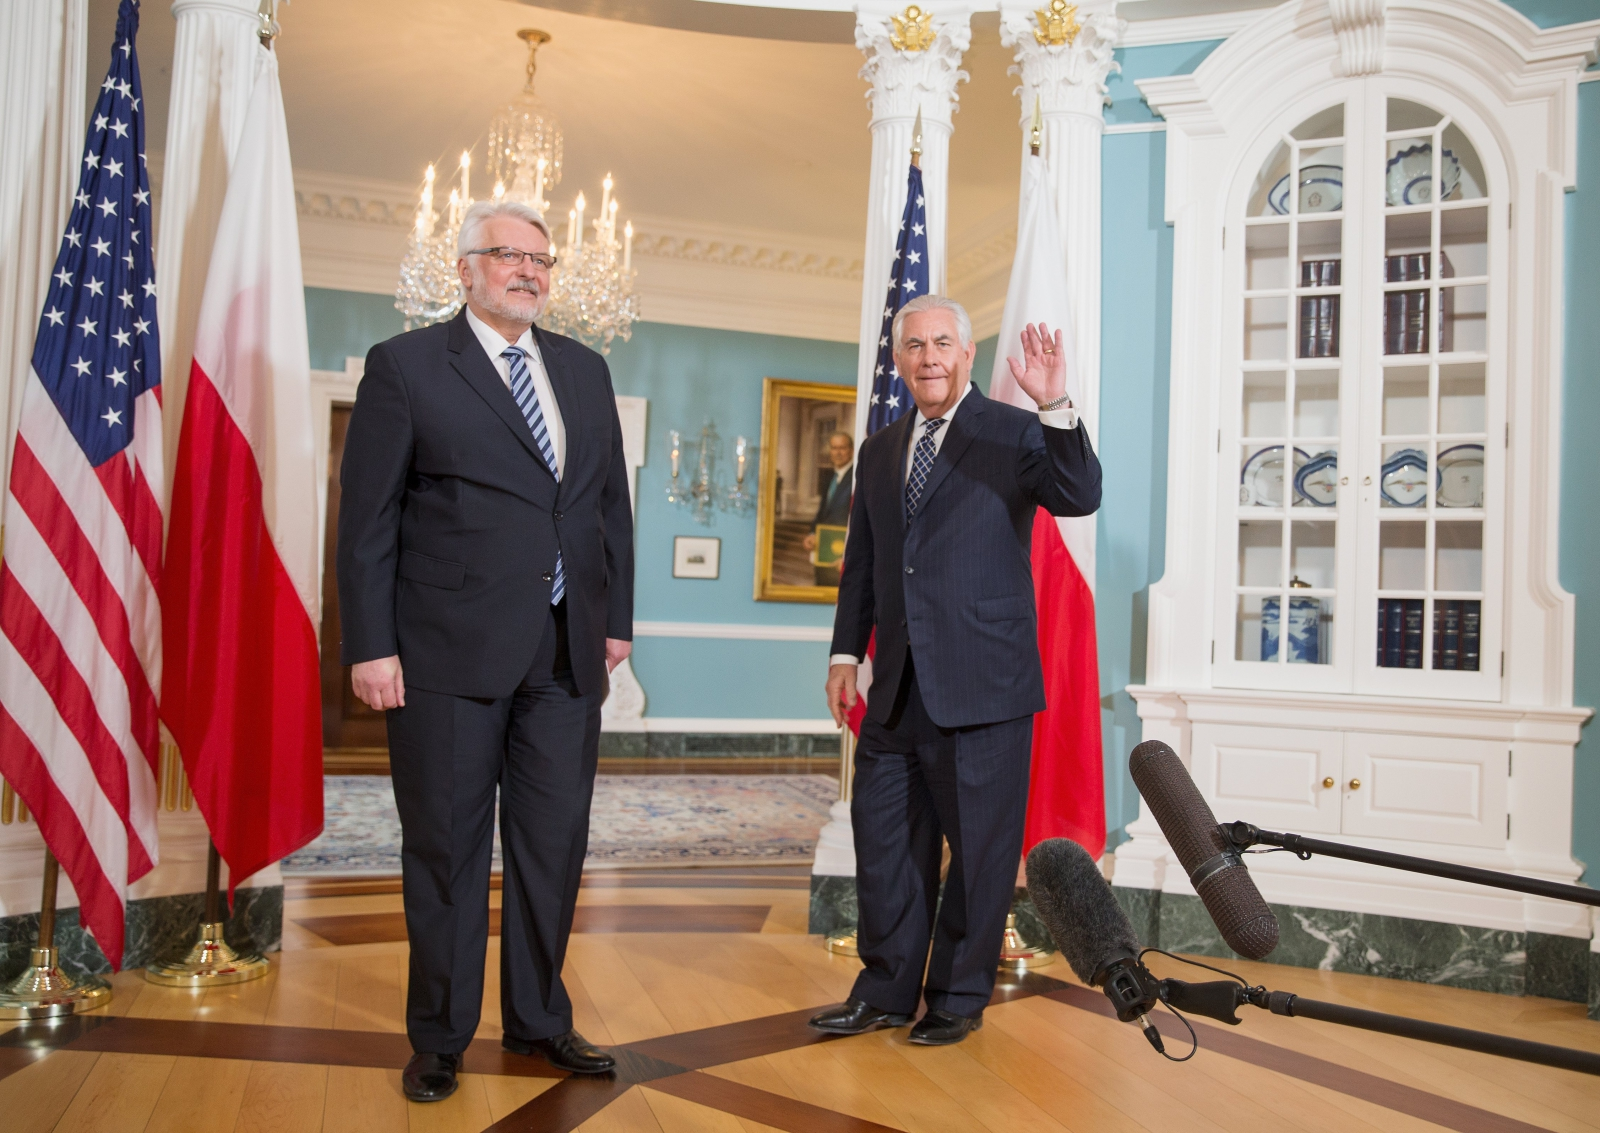 US Secretary of State, Rex Tillerson (R) and Polish Foreign Minister Witold Waszczykowski (L) pose for photos at the US Department of State in Washington, DC. Photo: EPA/TASOS KATOPODIS